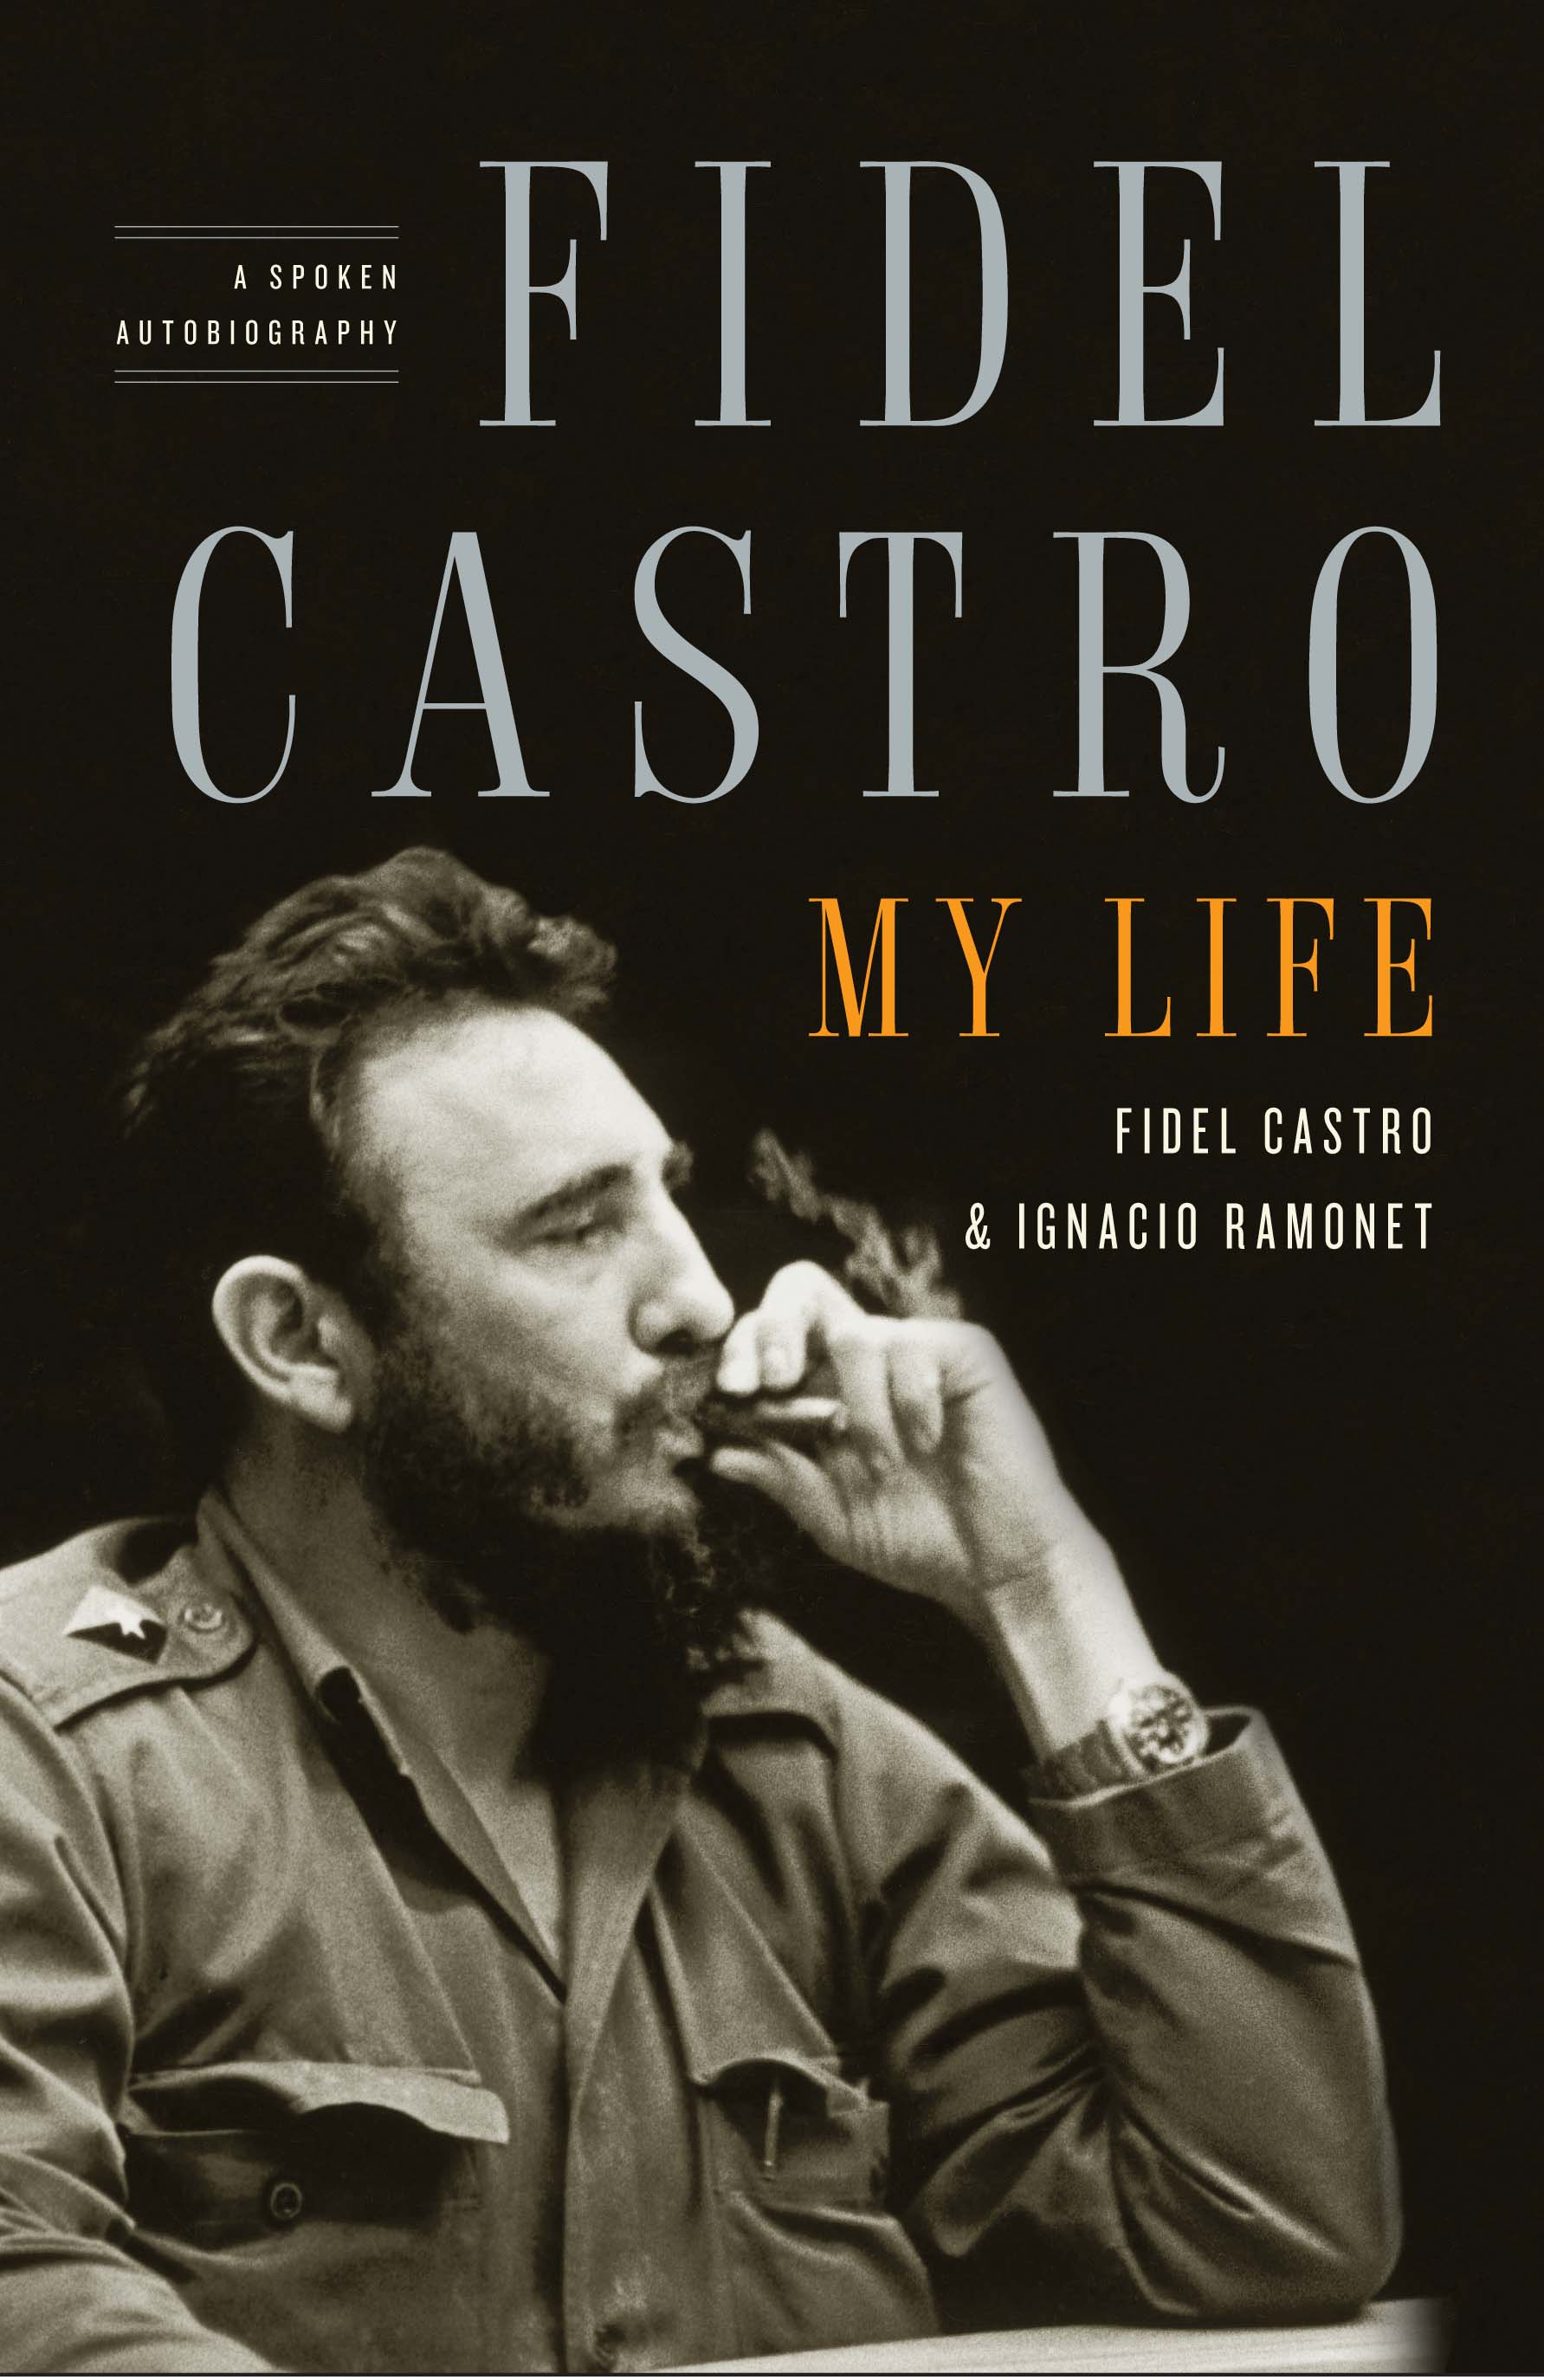 The life and times of fidel castro